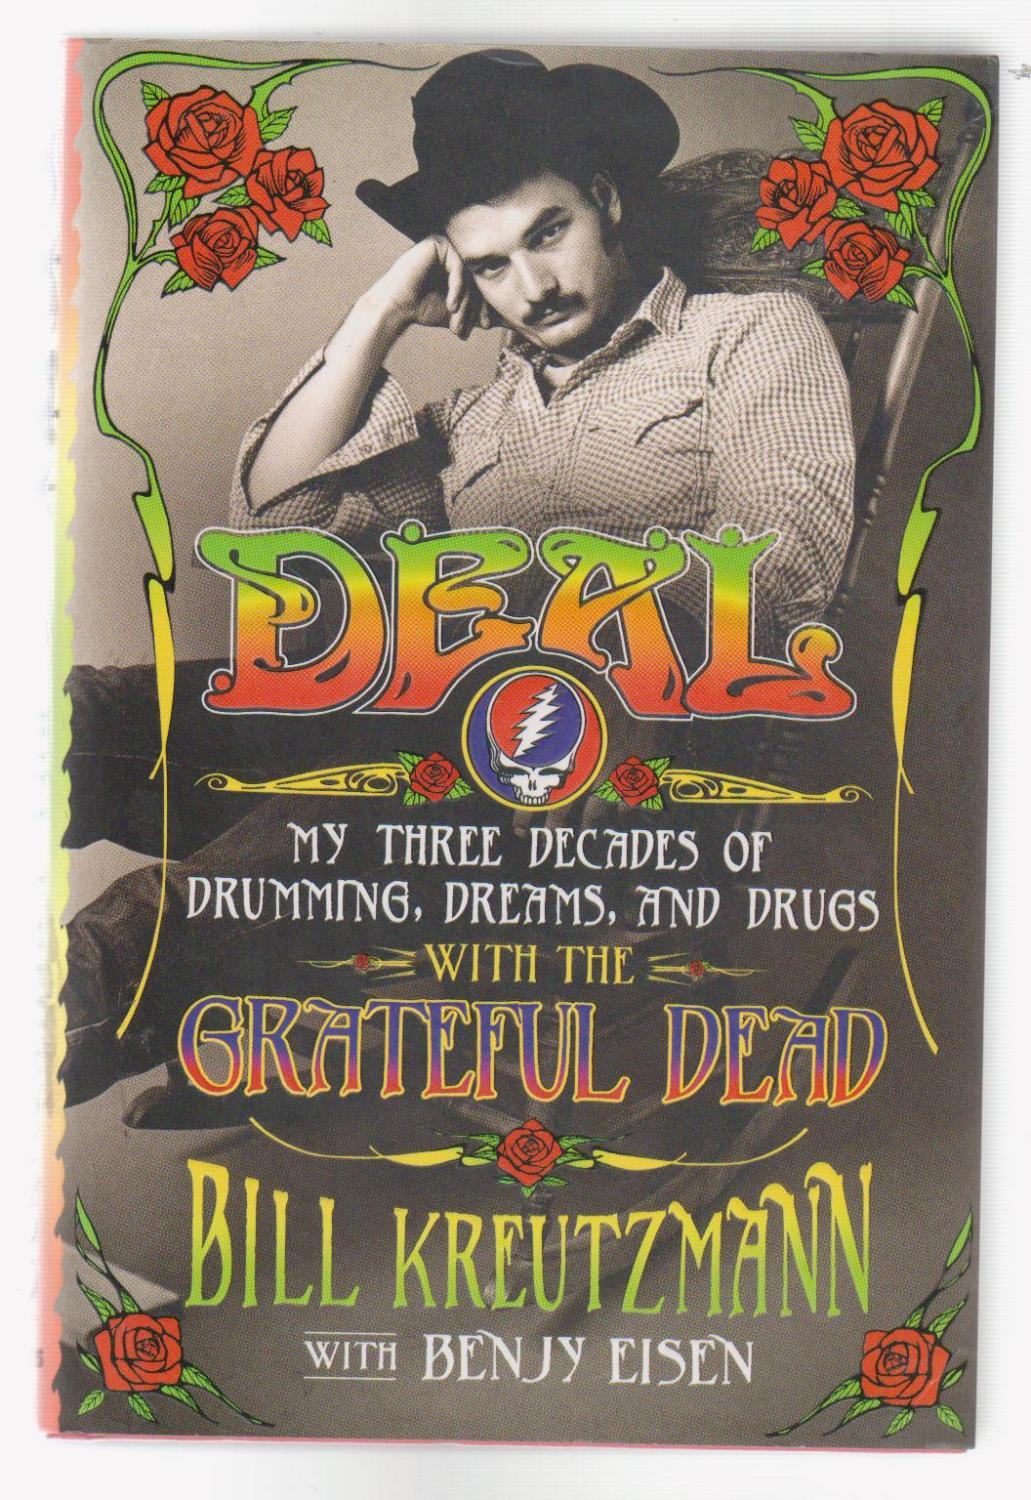 DEAL. My Three Decades of Drumming, Dreams, and Drugs with the Grateful Dead